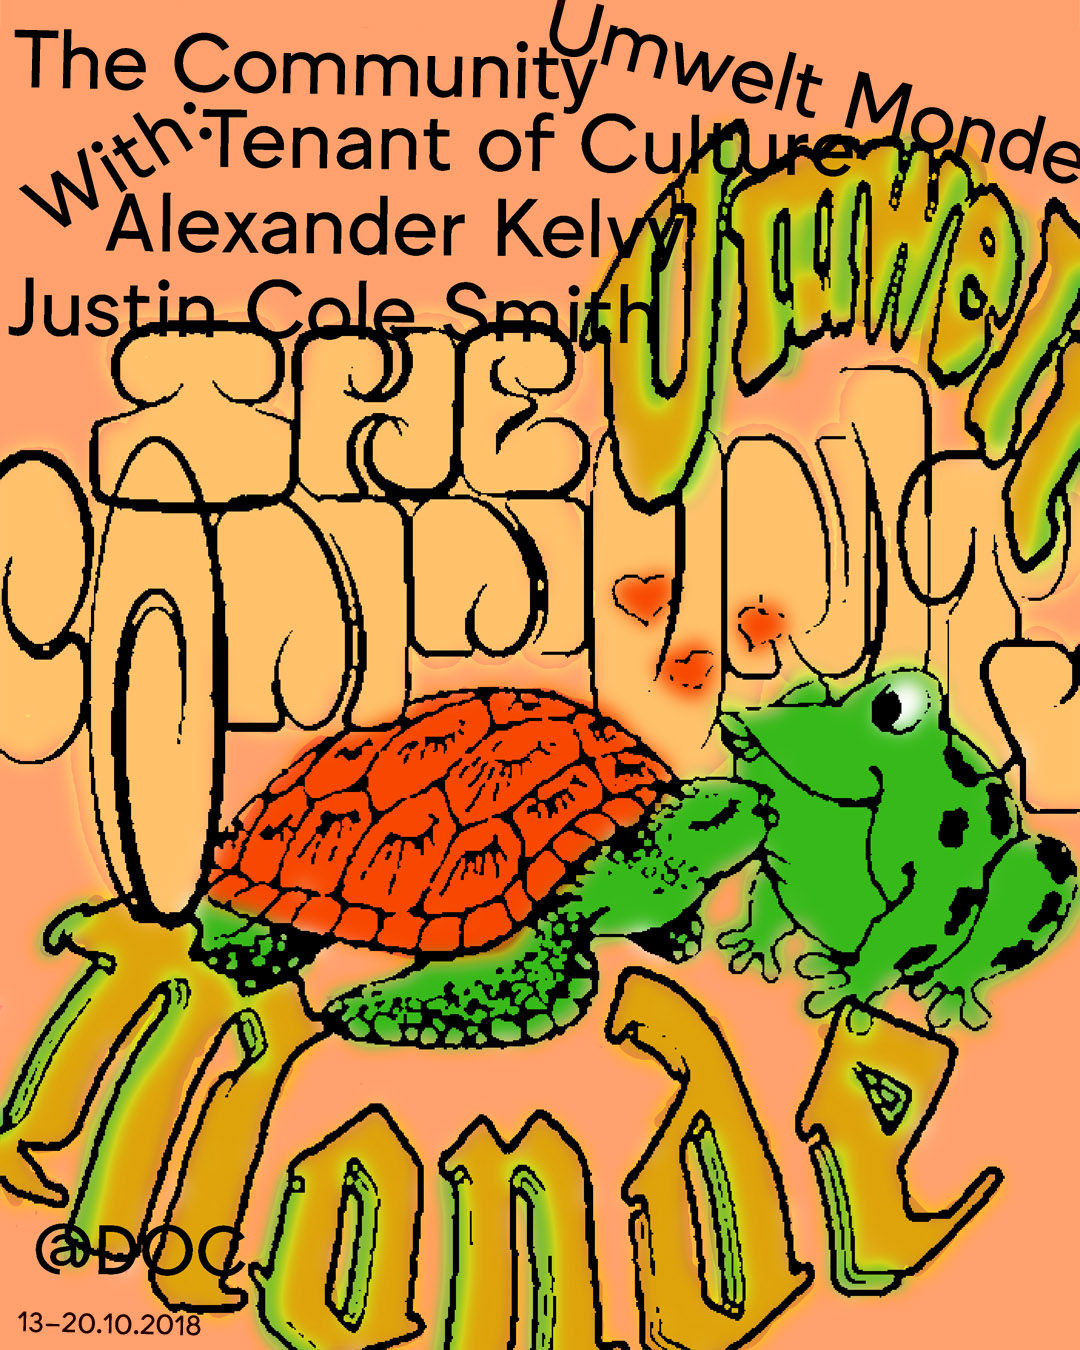 The Community presents a group exhibition opening this Saturday as part of Umwelt Monde at DOC with:  Tenant of Culture Alexander Kelvy Justin Cole Smith  Saturday, October 13th  DOC 26 rue du Docteur Potain, 75019 Paris  DOC hosts six solo and group exhibitions under the frame of Umwelt Monde. A cross-section of presentations, reflecting a community that is not defined by geography. Umwelt Monde is the fourth edition of Thomas Jeppe's Umwelt project. In June 2017 The Community participated in the third edition, Umwelt Mode, in Basel.  Organised by: Thomas Jeppe